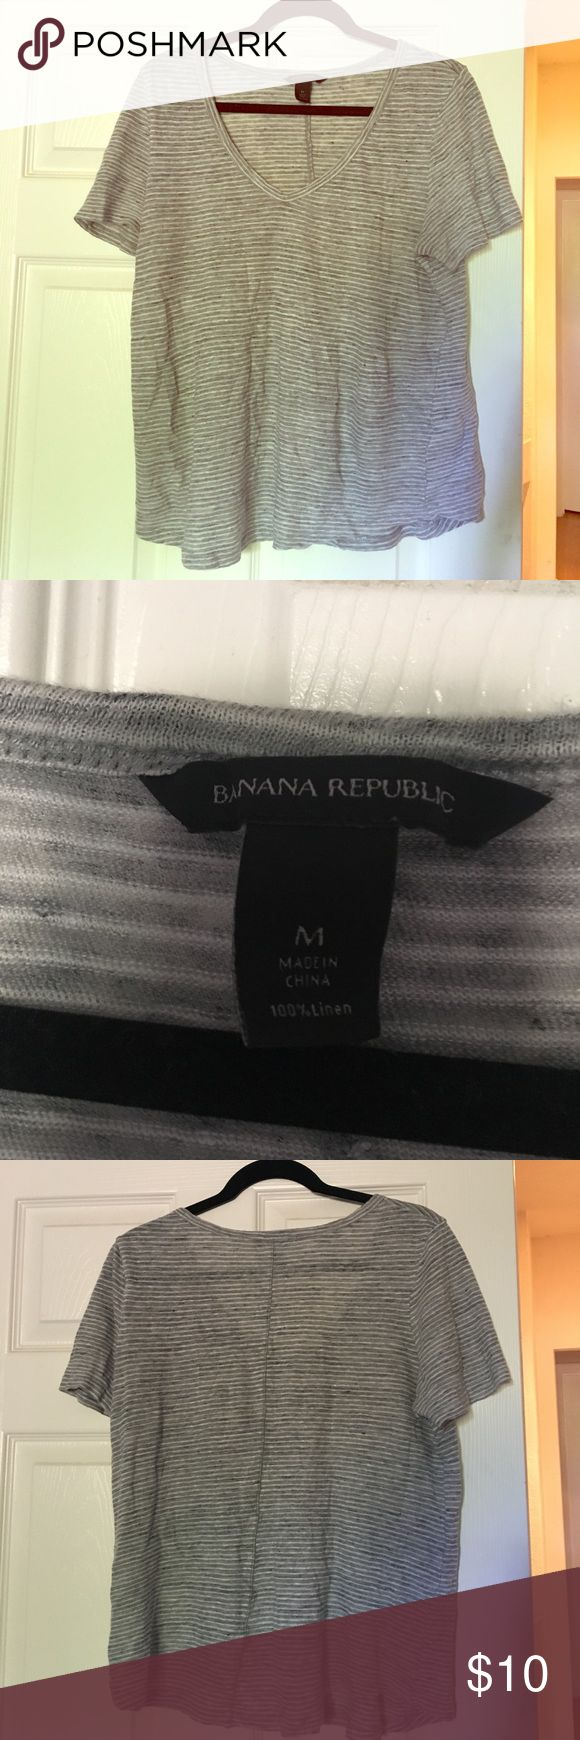 Banana Republic gray striped linen vneck tshirt Banana Republic gray striped linen tshirt. EUC, no stains or imperfections. Great, light tshirt for the warm summer months! Banana Republic Tops Tees - Short Sleeve